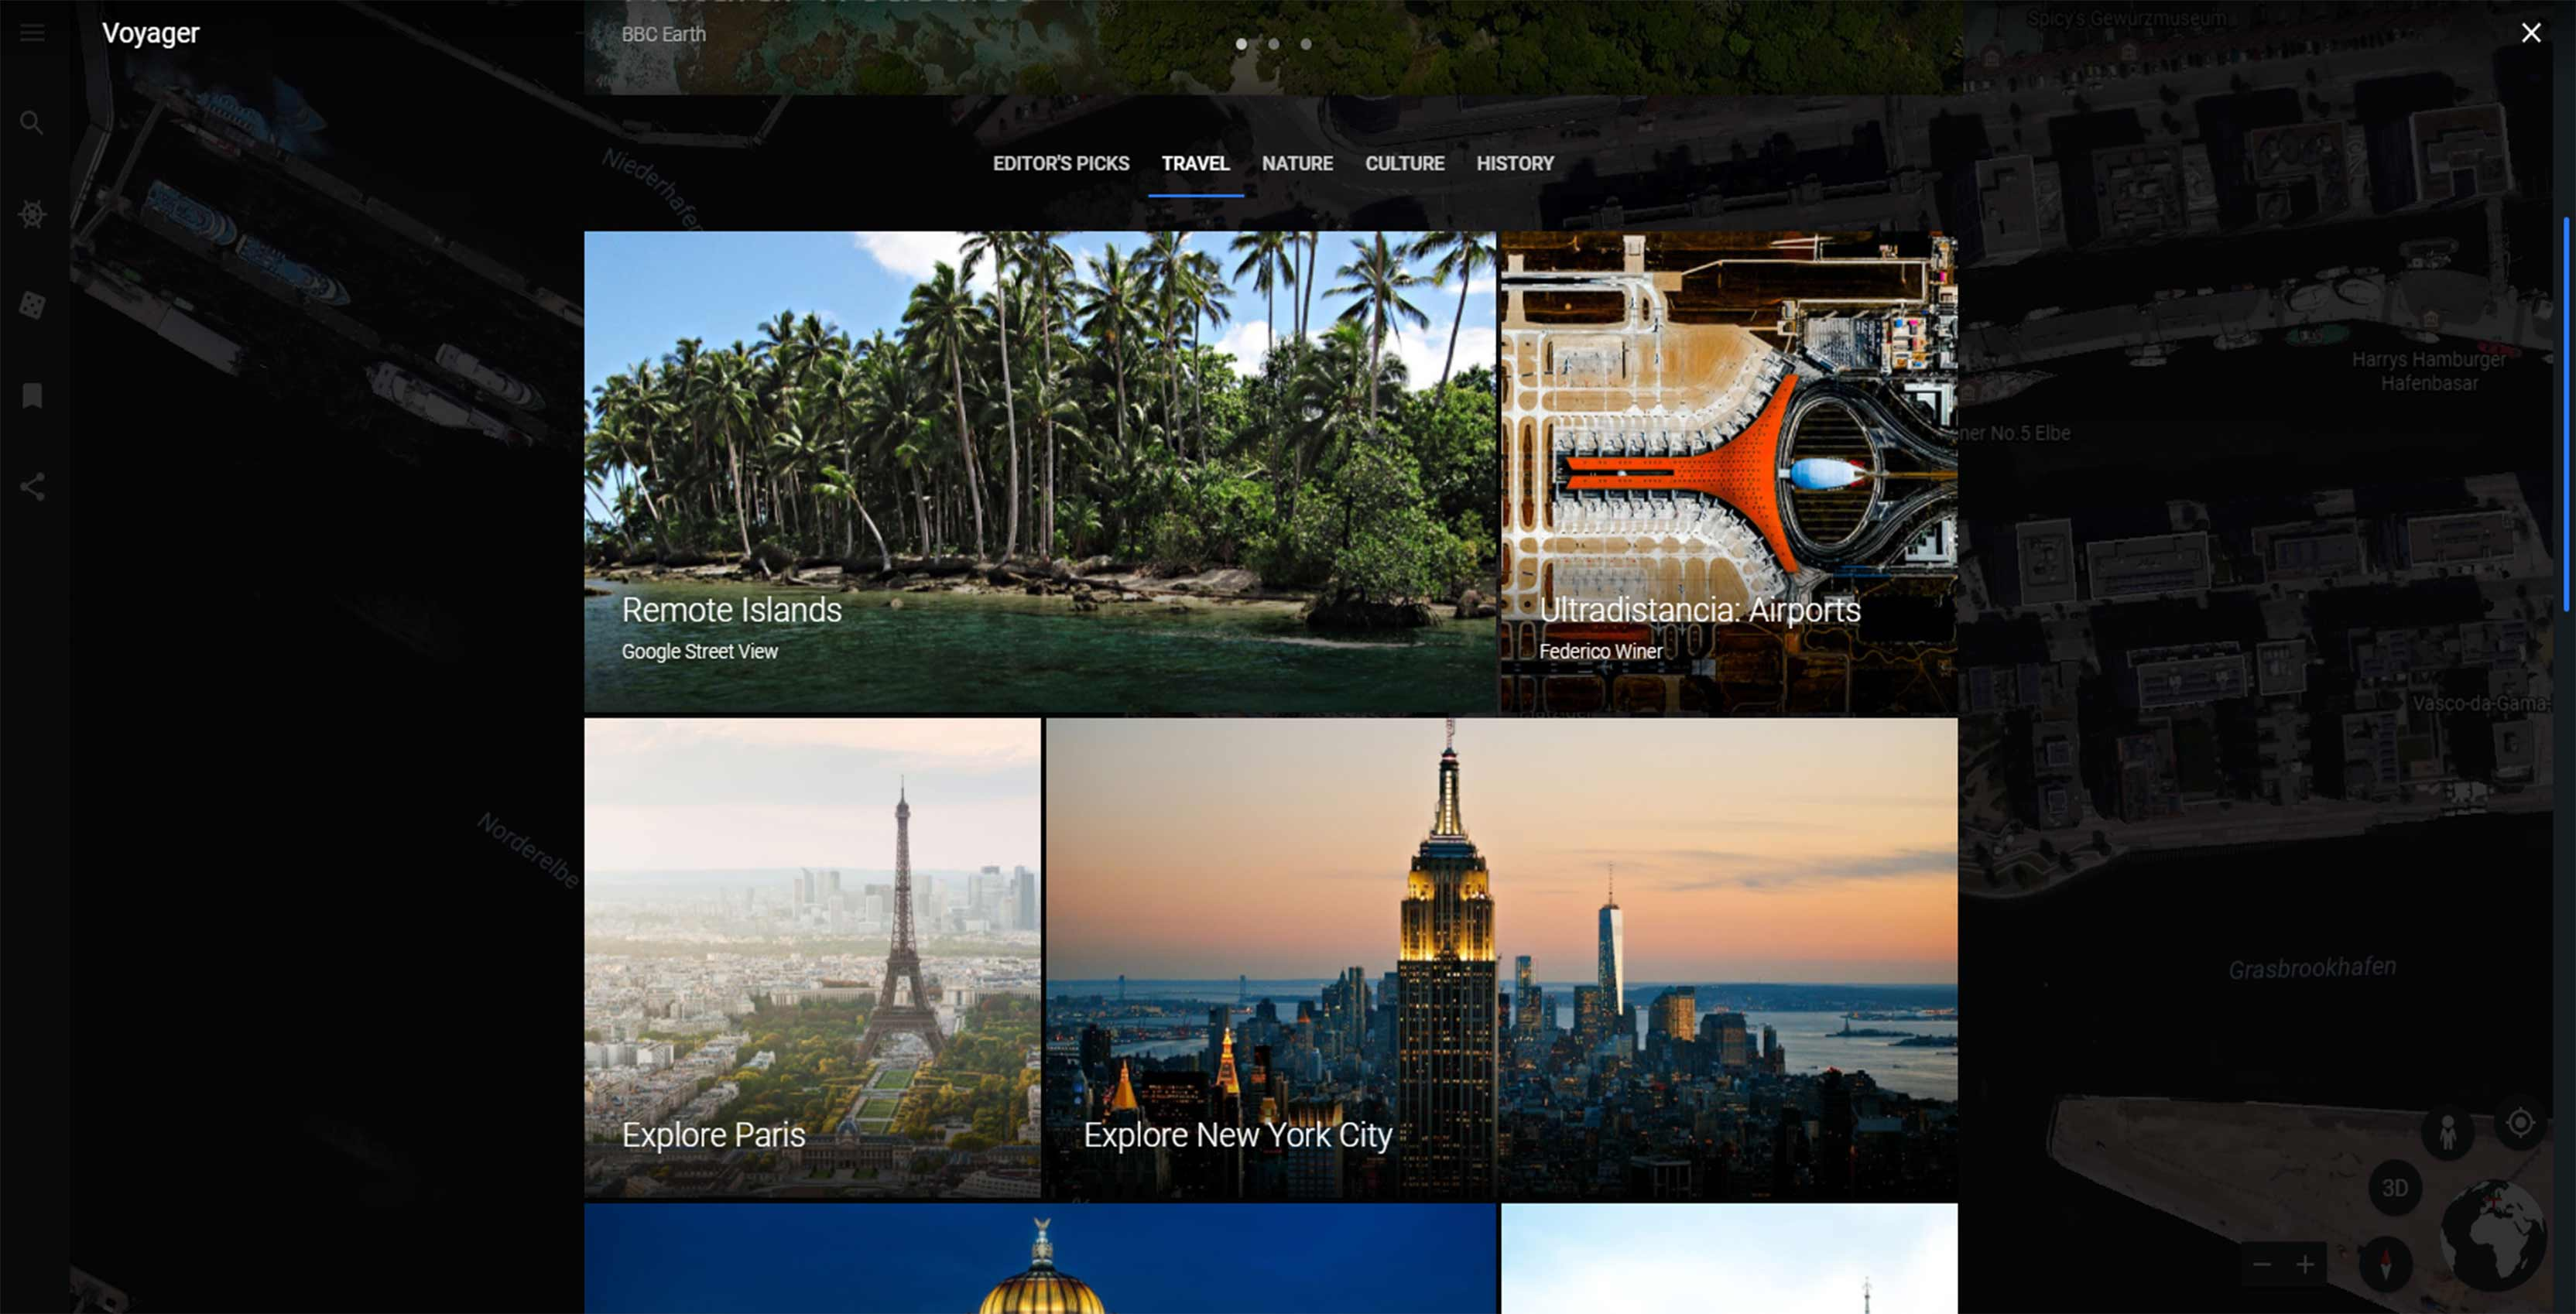 Google Earth Voyages tab